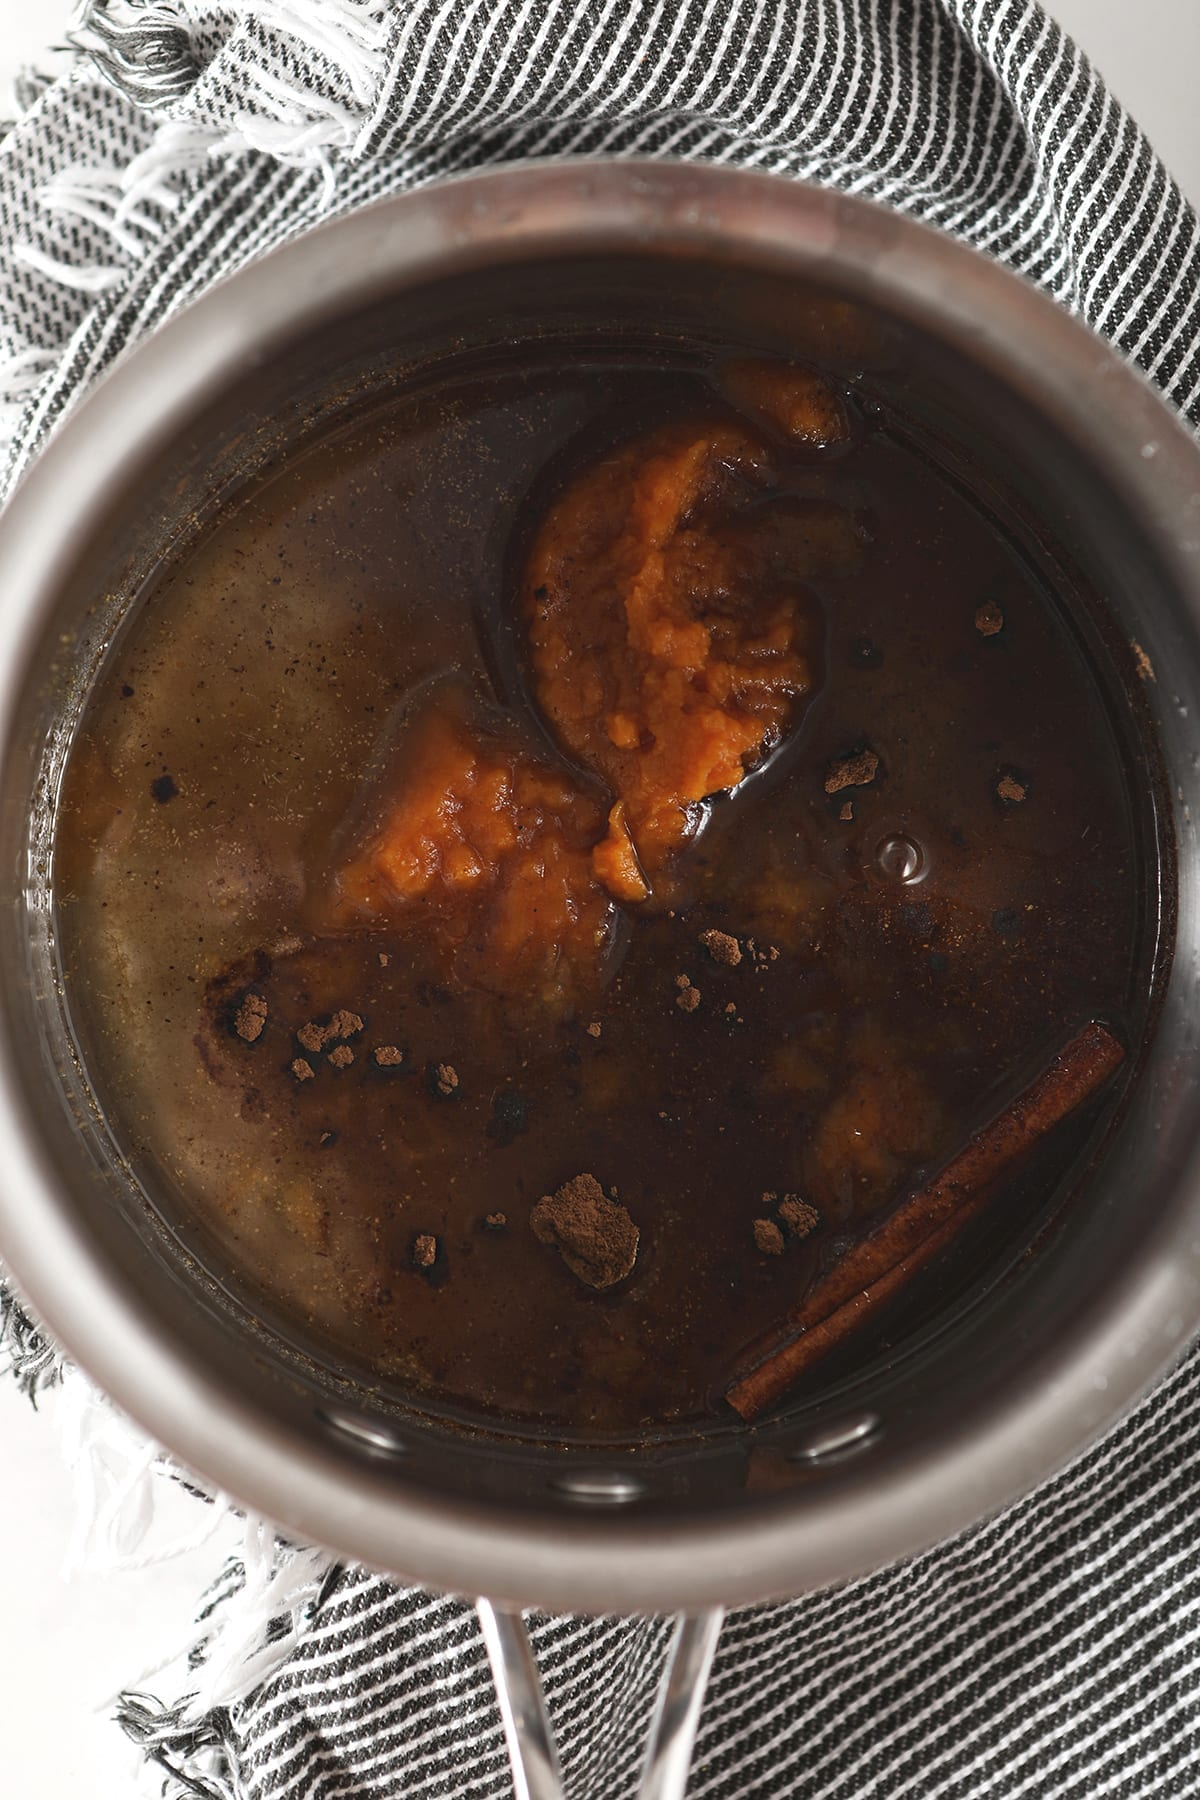 Pumpkin, spices and other ingredients steep in simple syrup in a saucepan